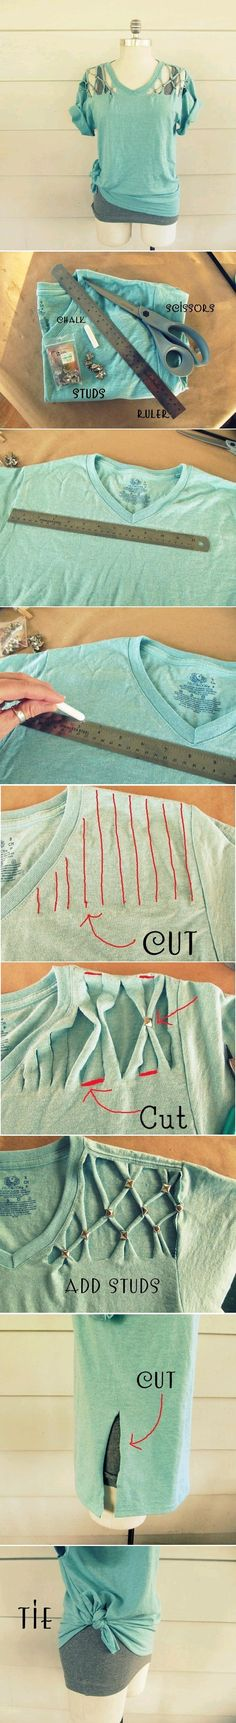 DIY Studded T-Shirt